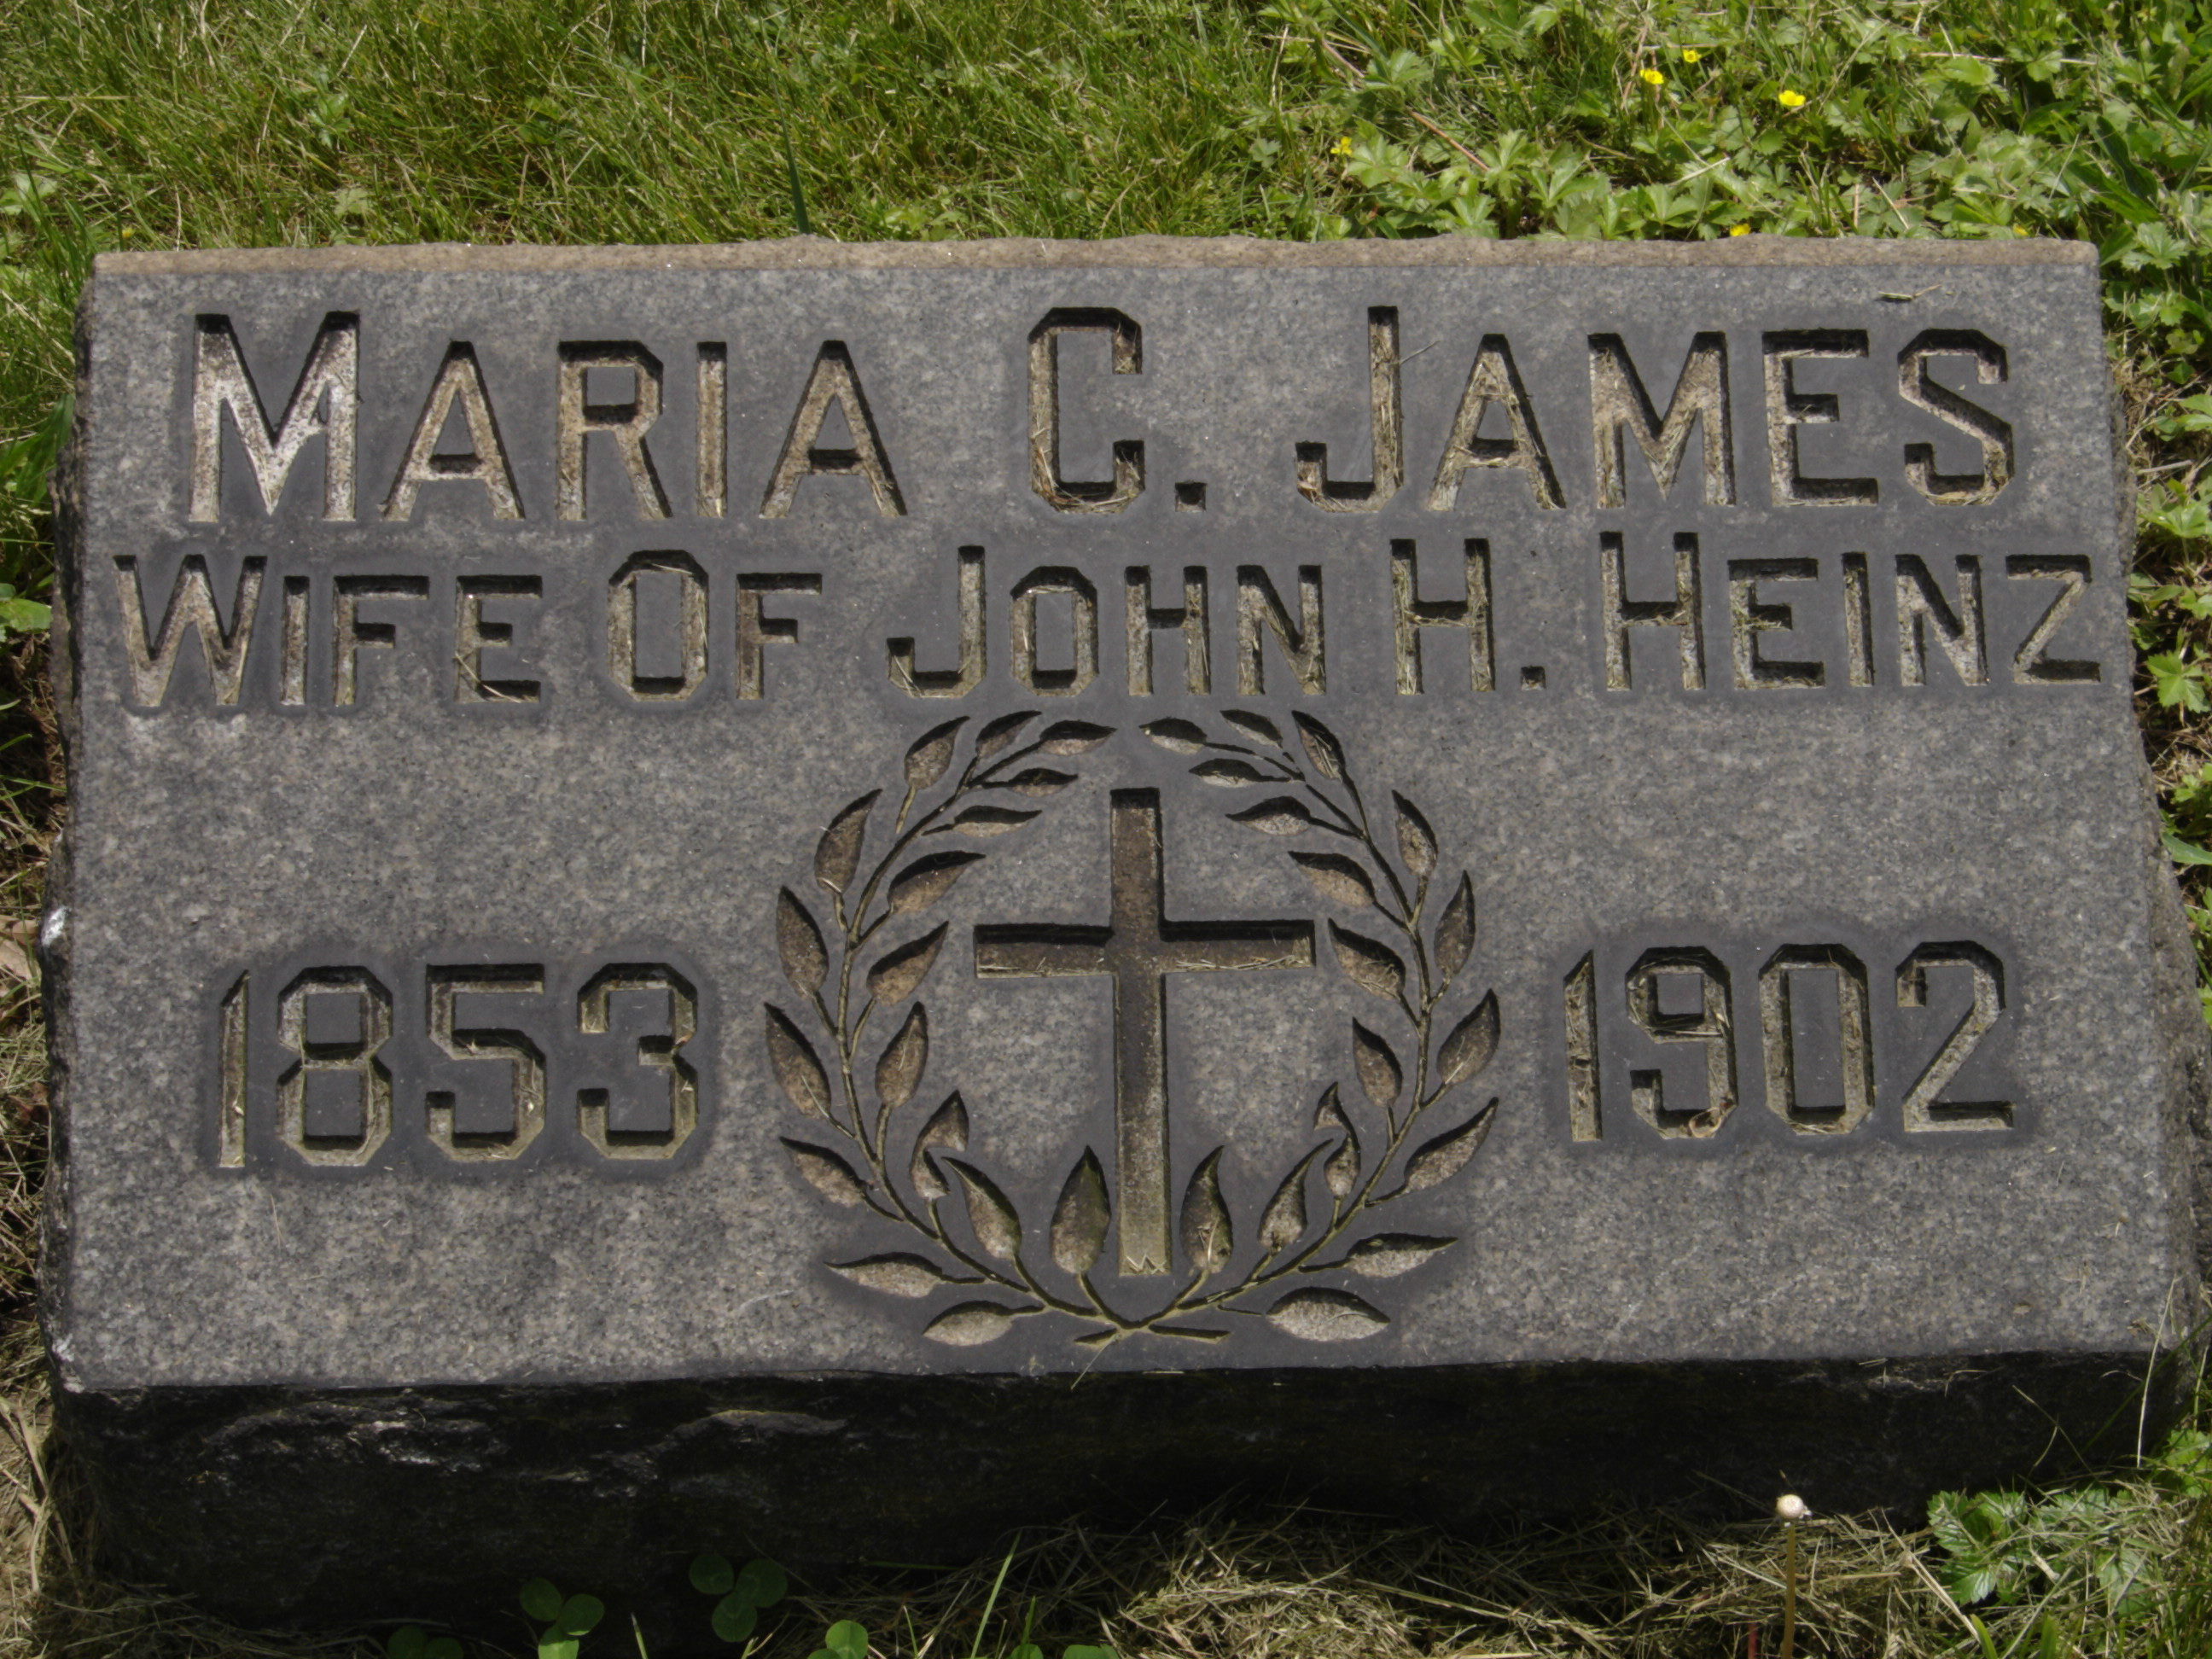 Maria Chesman James